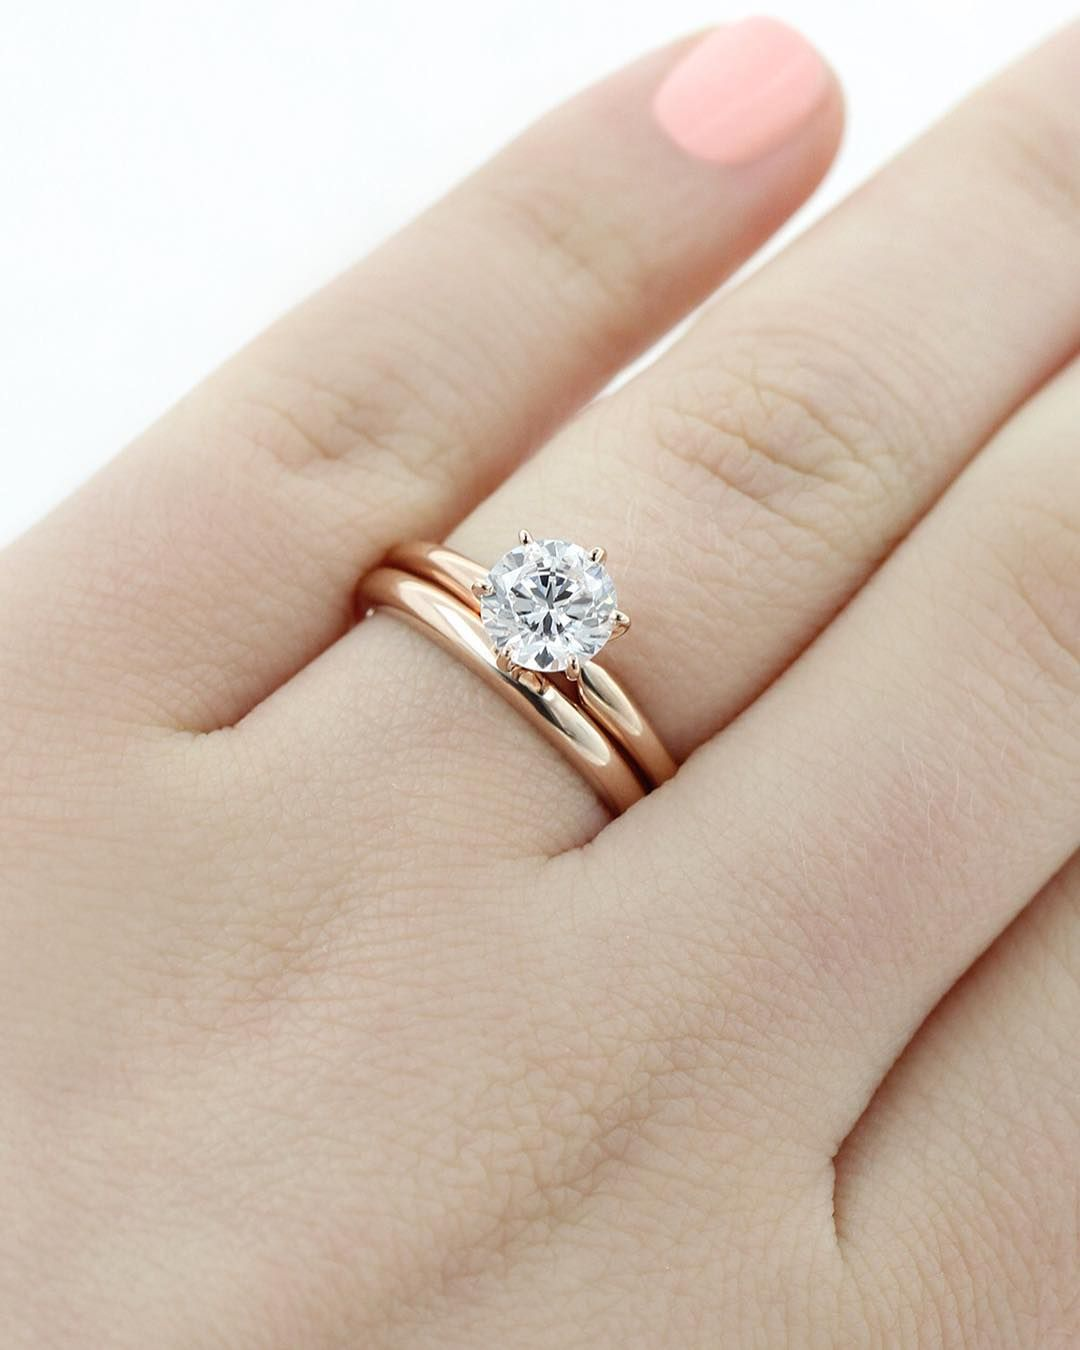 carat engagement diamond solitare bands round pave thin gold moissanite wedding rose band set solitaire matching ring